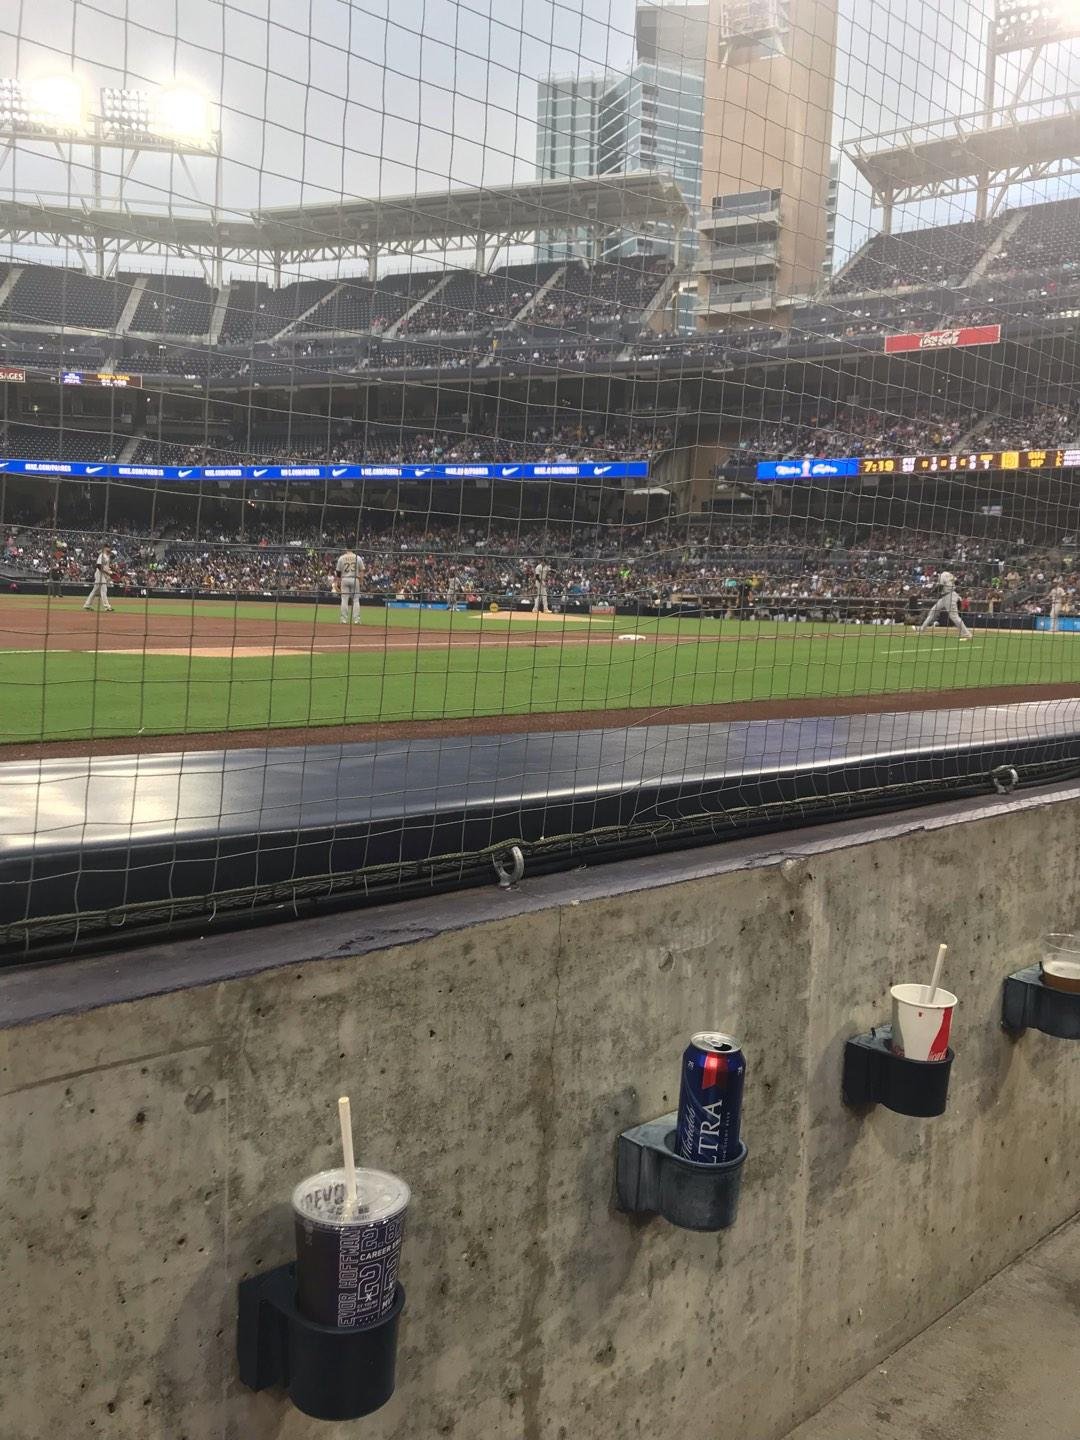 PETCO Park Section 114 Row 1 Seat 10